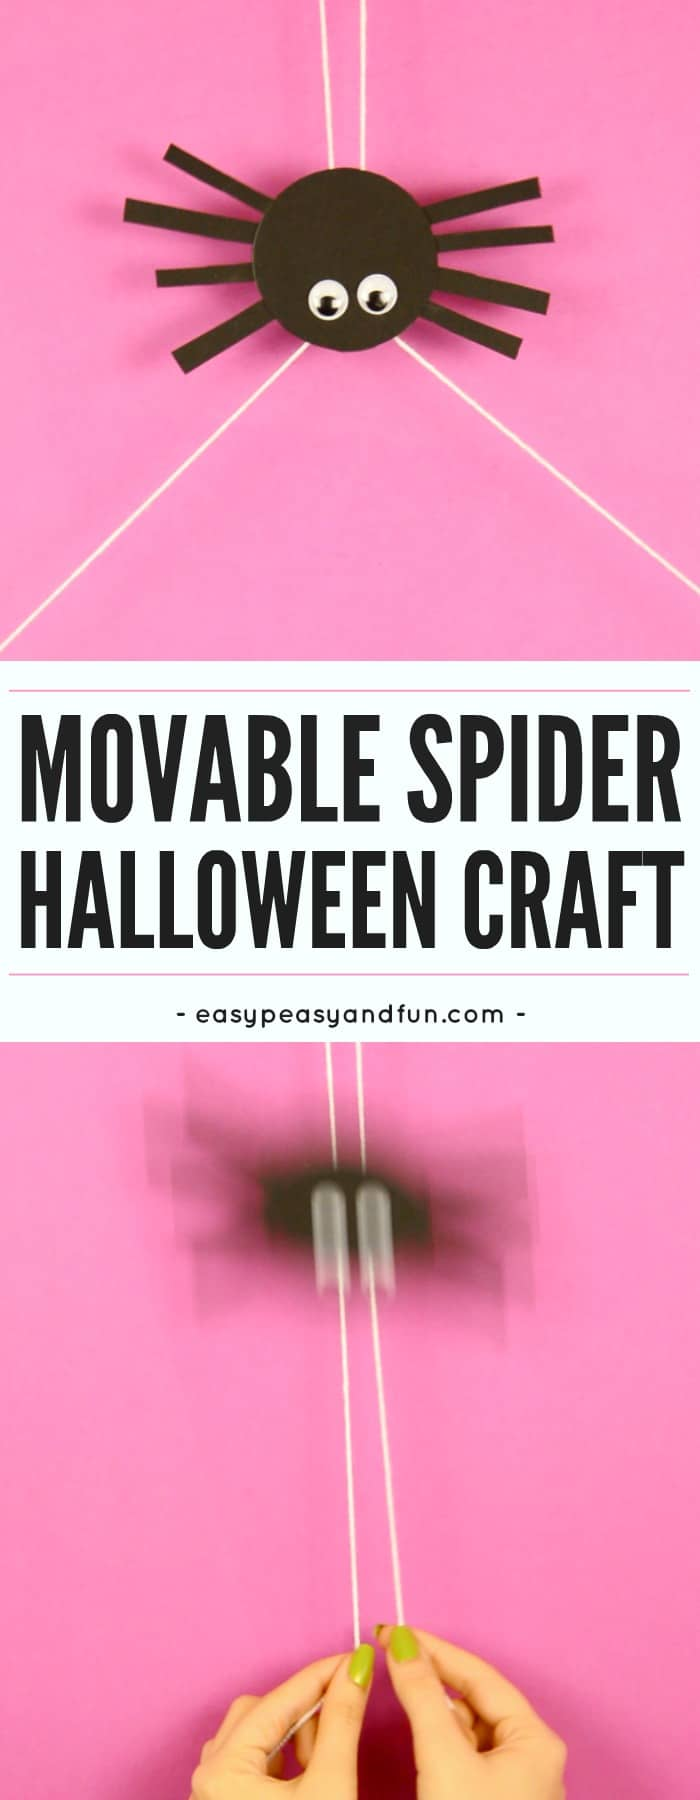 Movable Spider Craft Easy Peasy